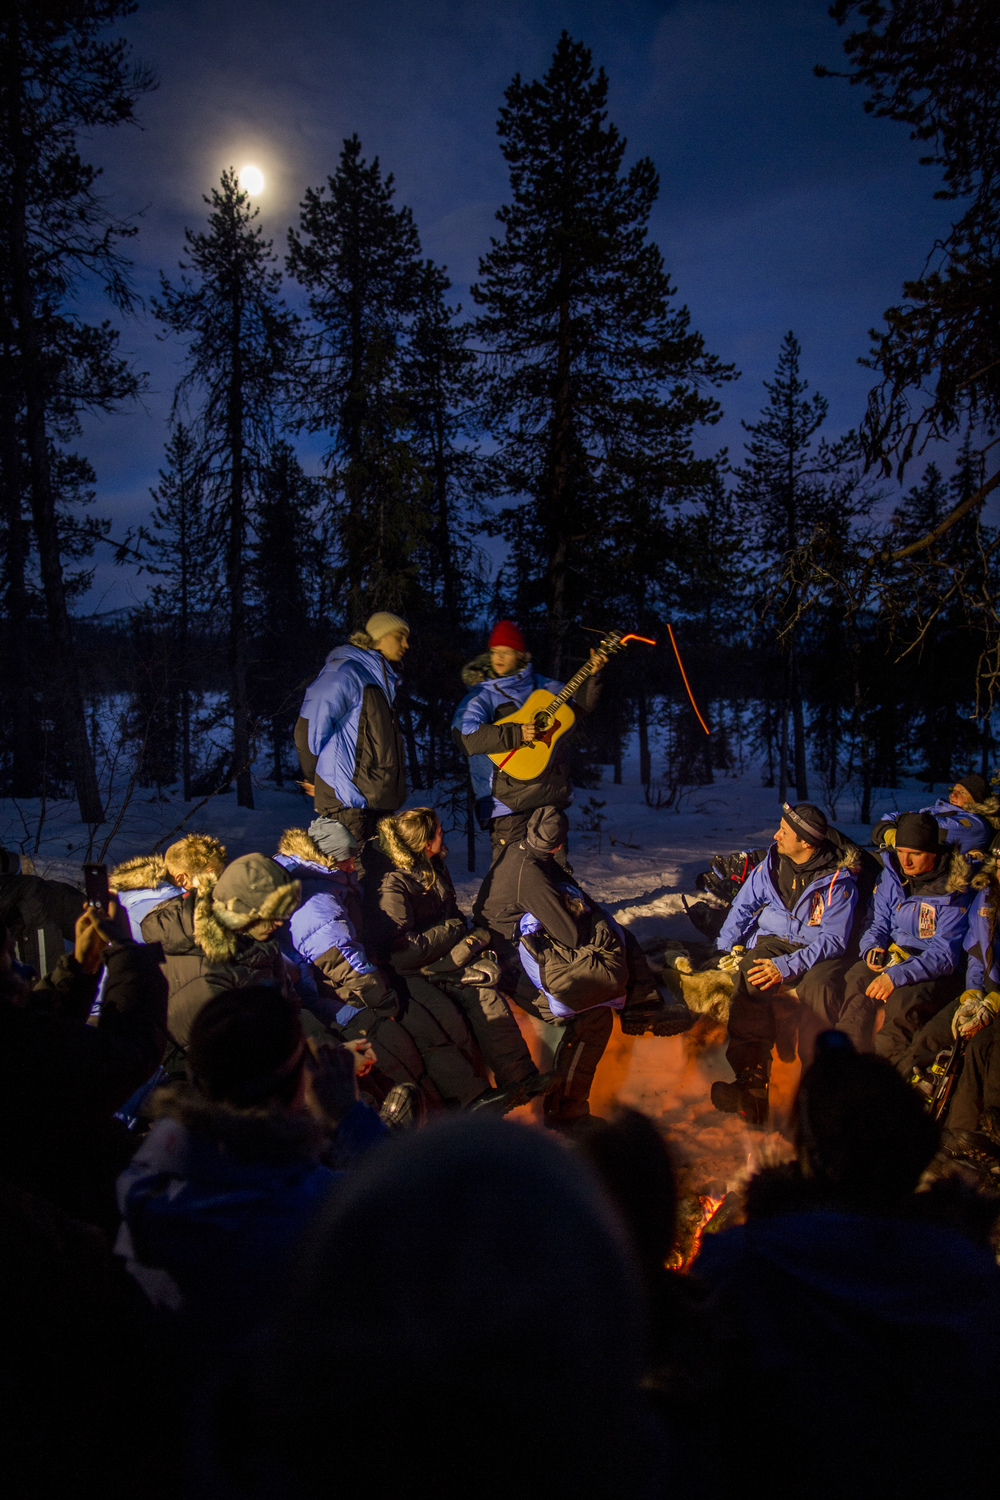 Björn Dixgård and Gustaf Norén of Mando Diao give Fjällräven Polar participants a surprise performance around the bonfire. (Photo by Håkan Wike for Fjällräven International. All rights reserved.)